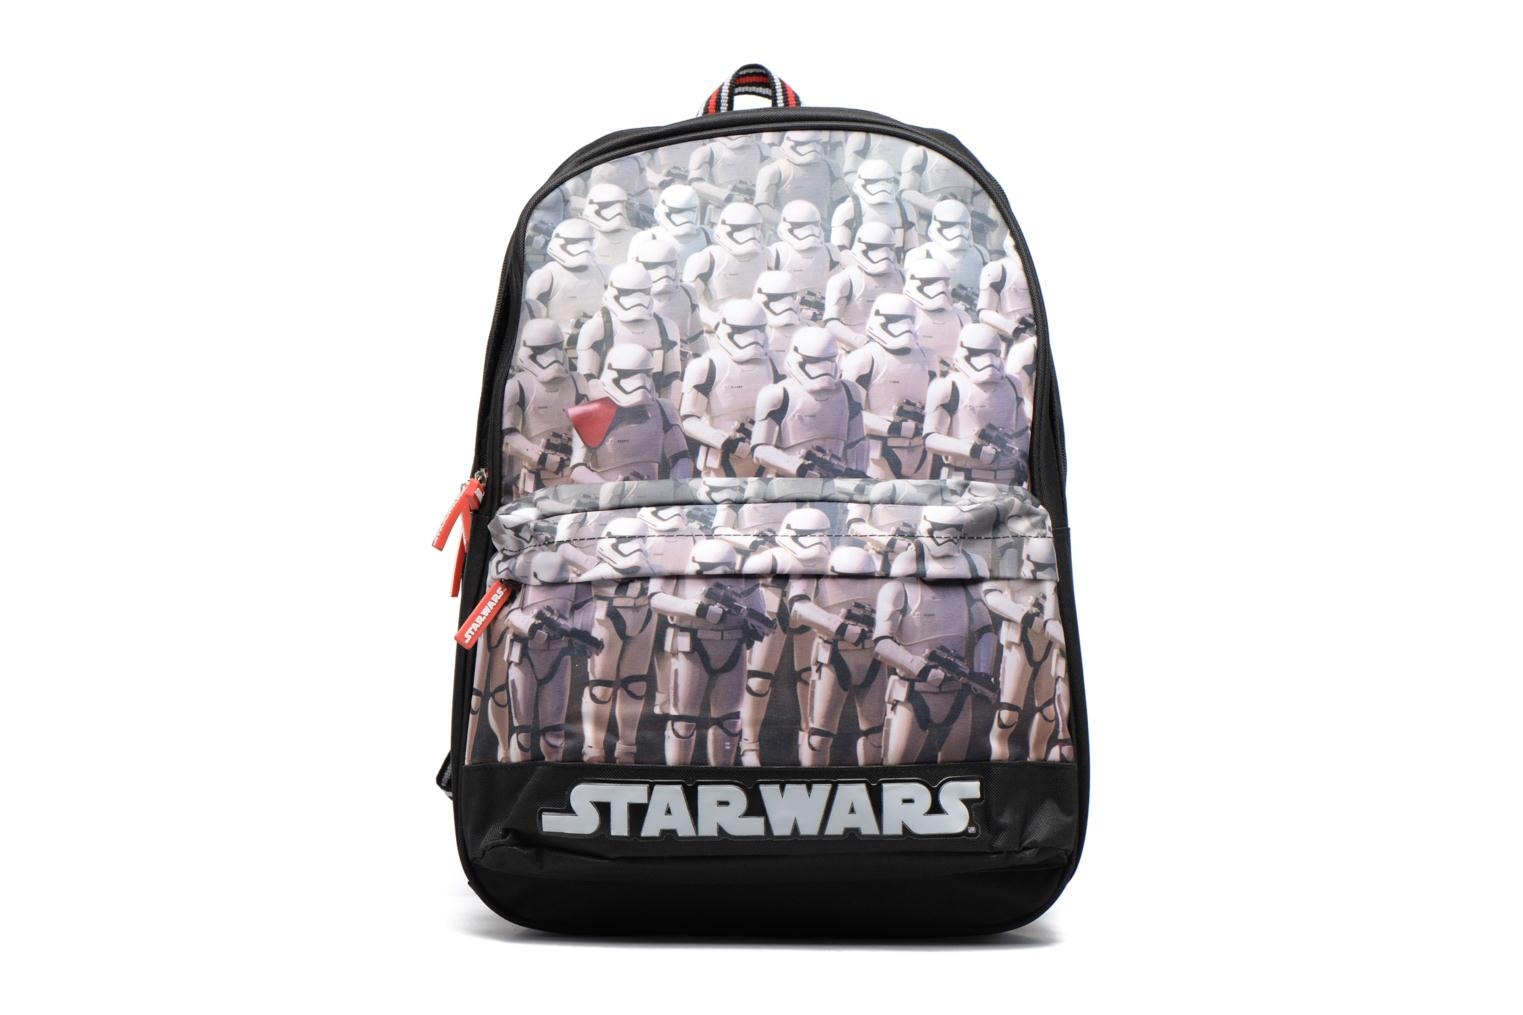 Scolaire Star Wars Sac à dos 2 compartiments Multicolore vue détail/paire